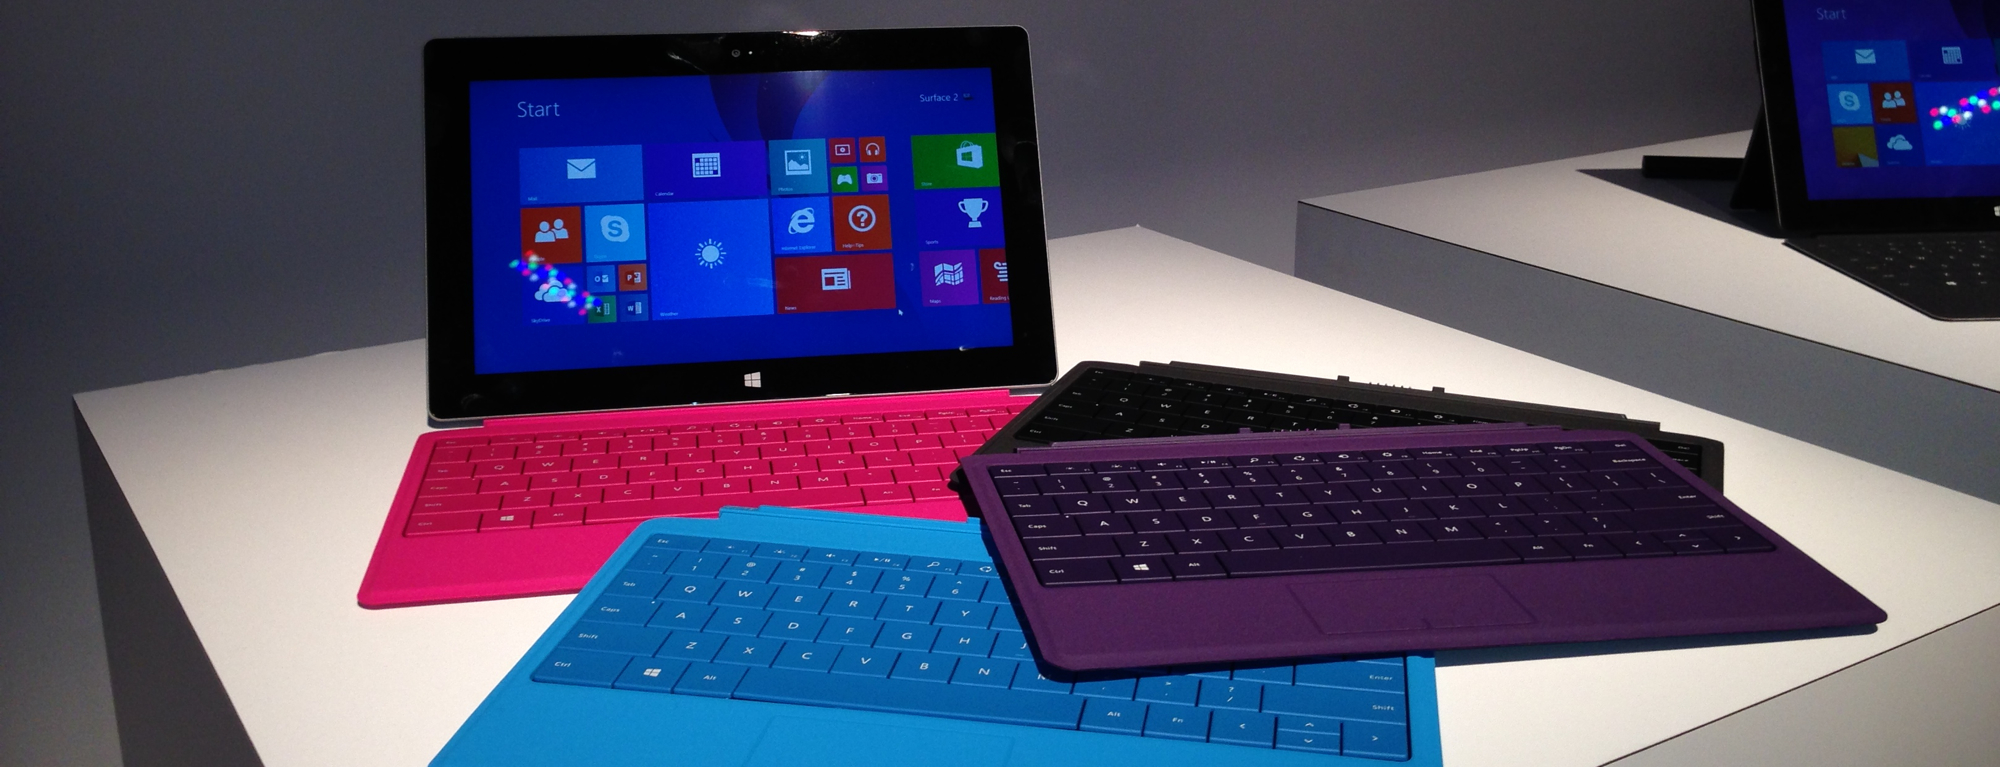 Surface 2 Launch and Nokia Buy: Microsoft Is Playing the Long Game